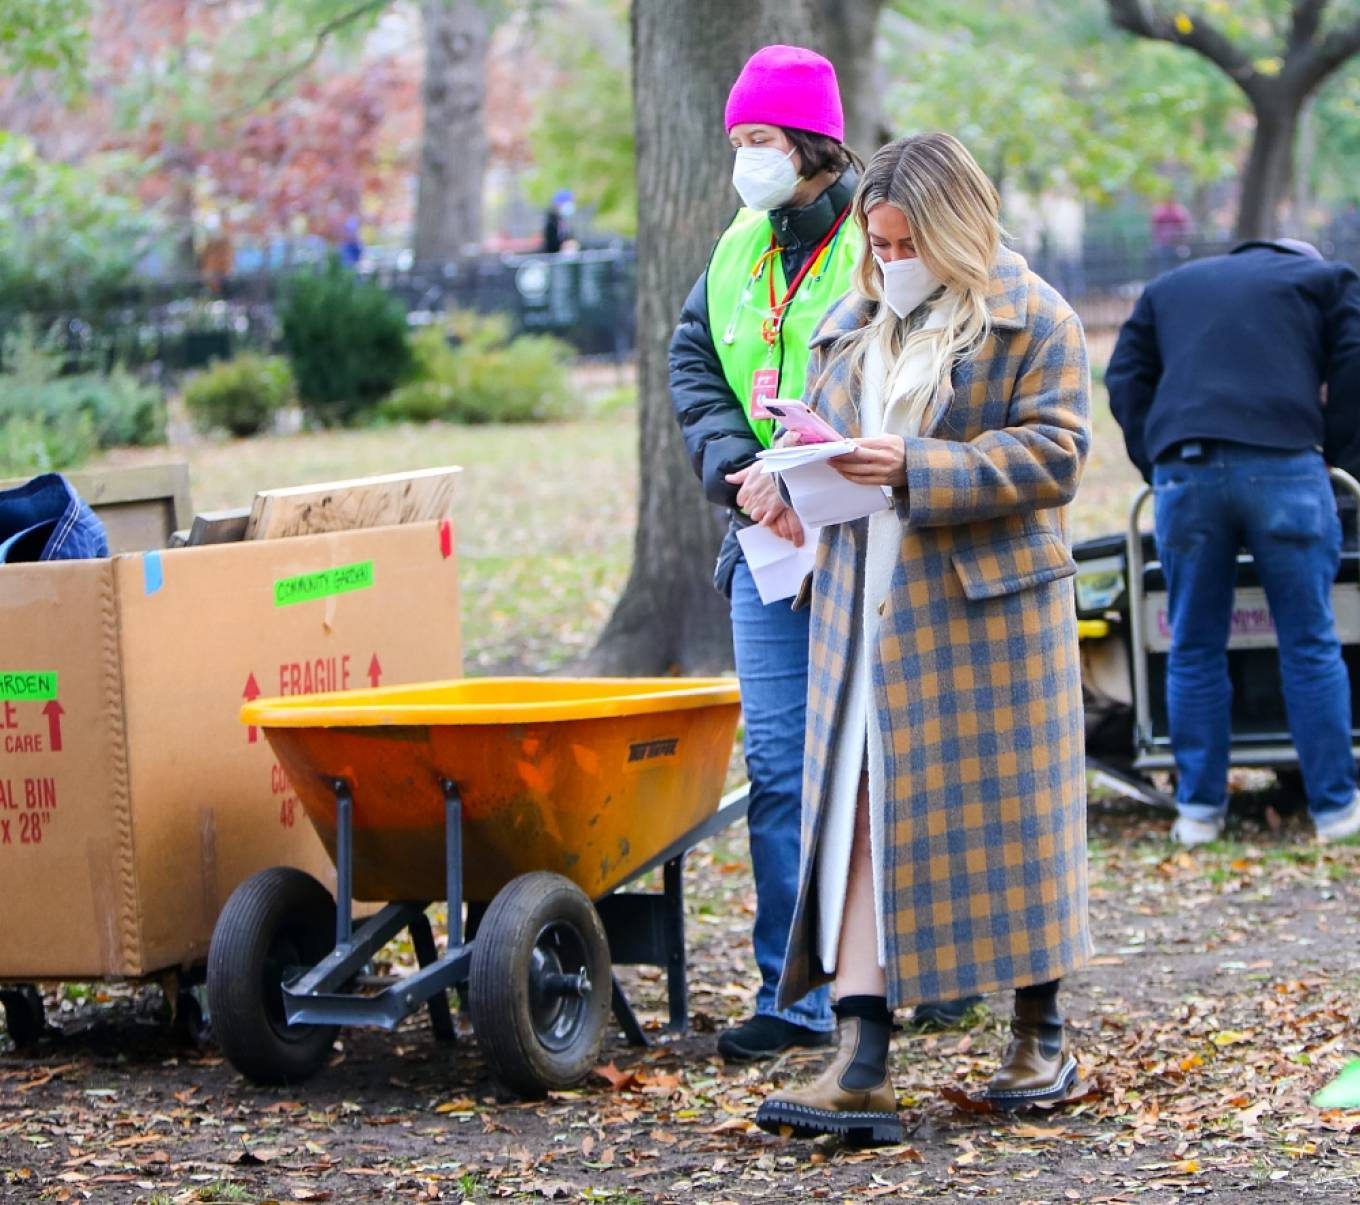 Hilary Duff 2020 : Hilary Duff – With Sutton Foster At the film set of the Younger TV Series in New York-04